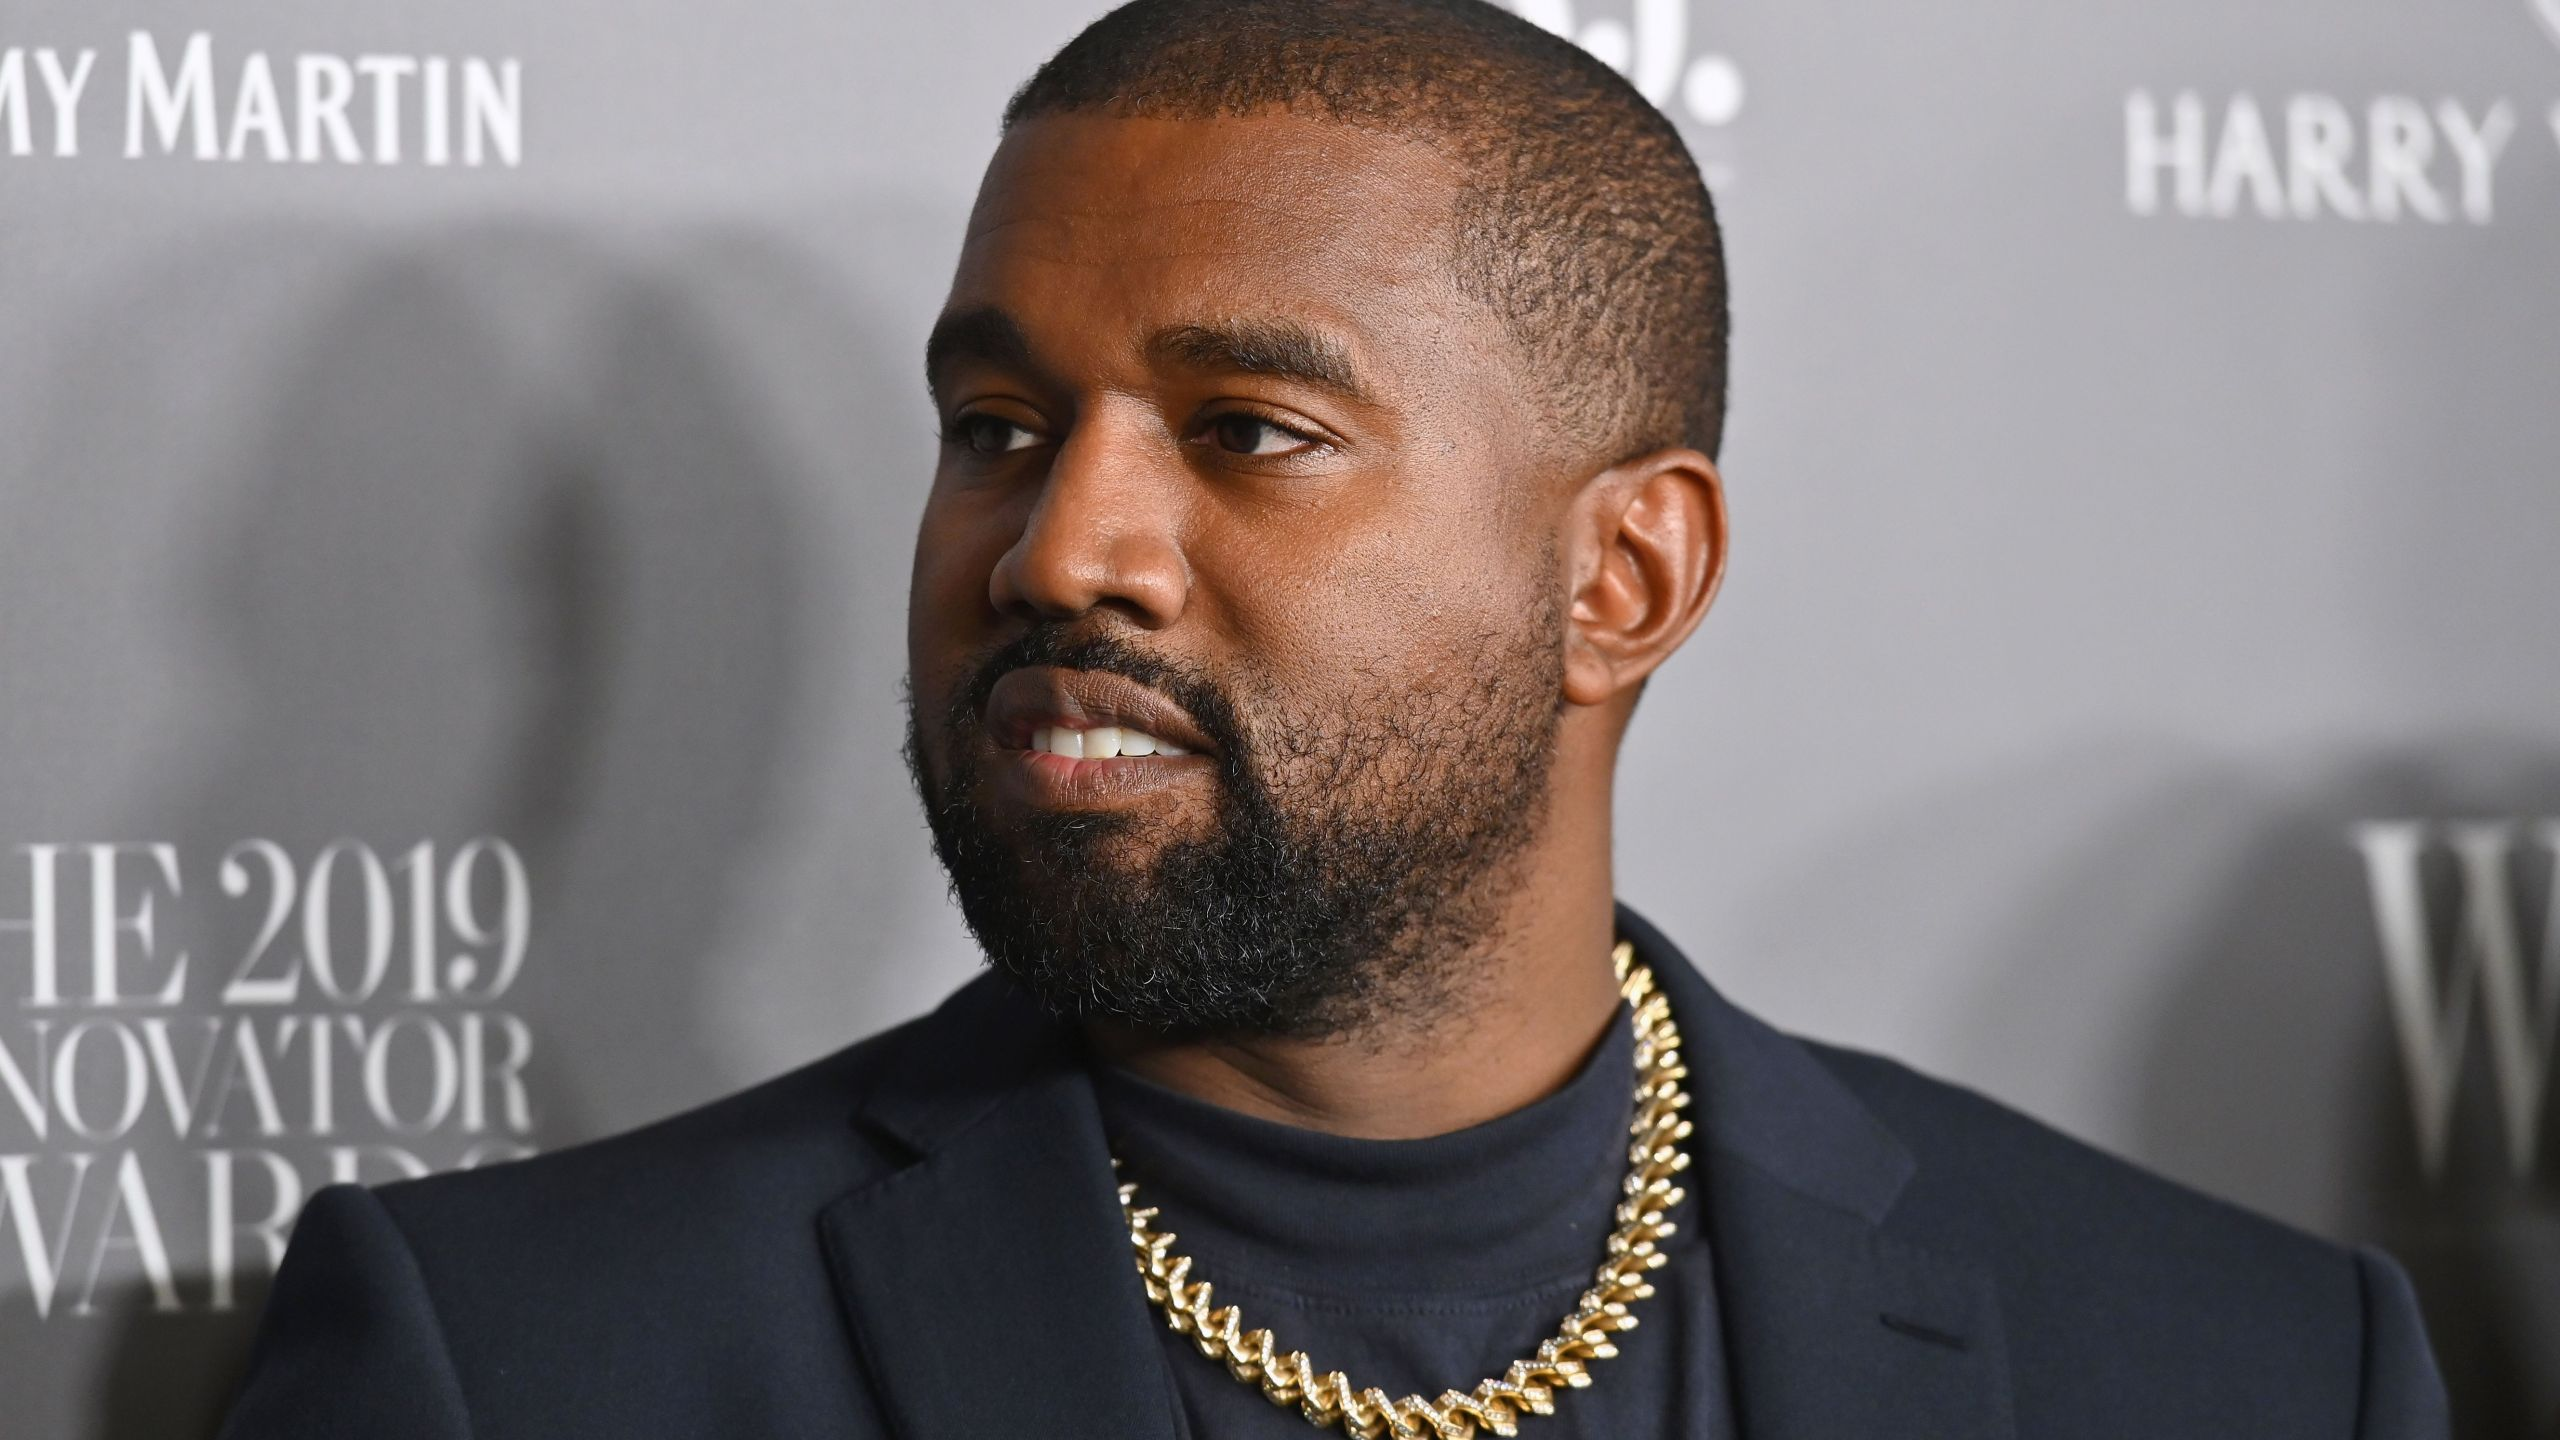 U.S. rapper Kanye West attends the WSJ Magazine 2019 Innovator Awards at MOMA on Nov. 6, 2019 in New York City. (Angela Weiss / AFP via Getty Images)